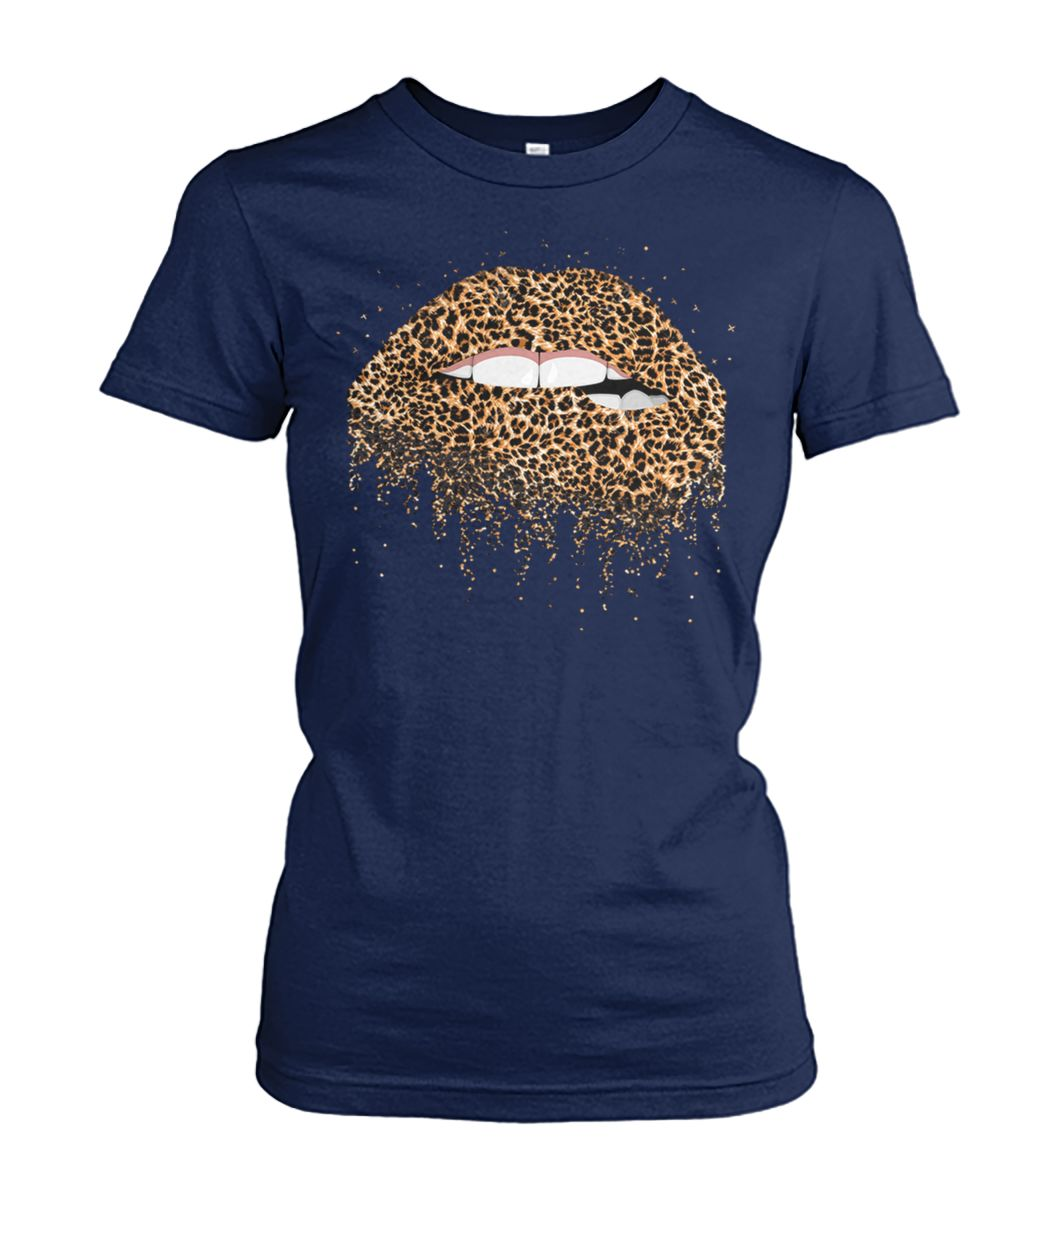 [Hot version] Sexy leopard lips shirt